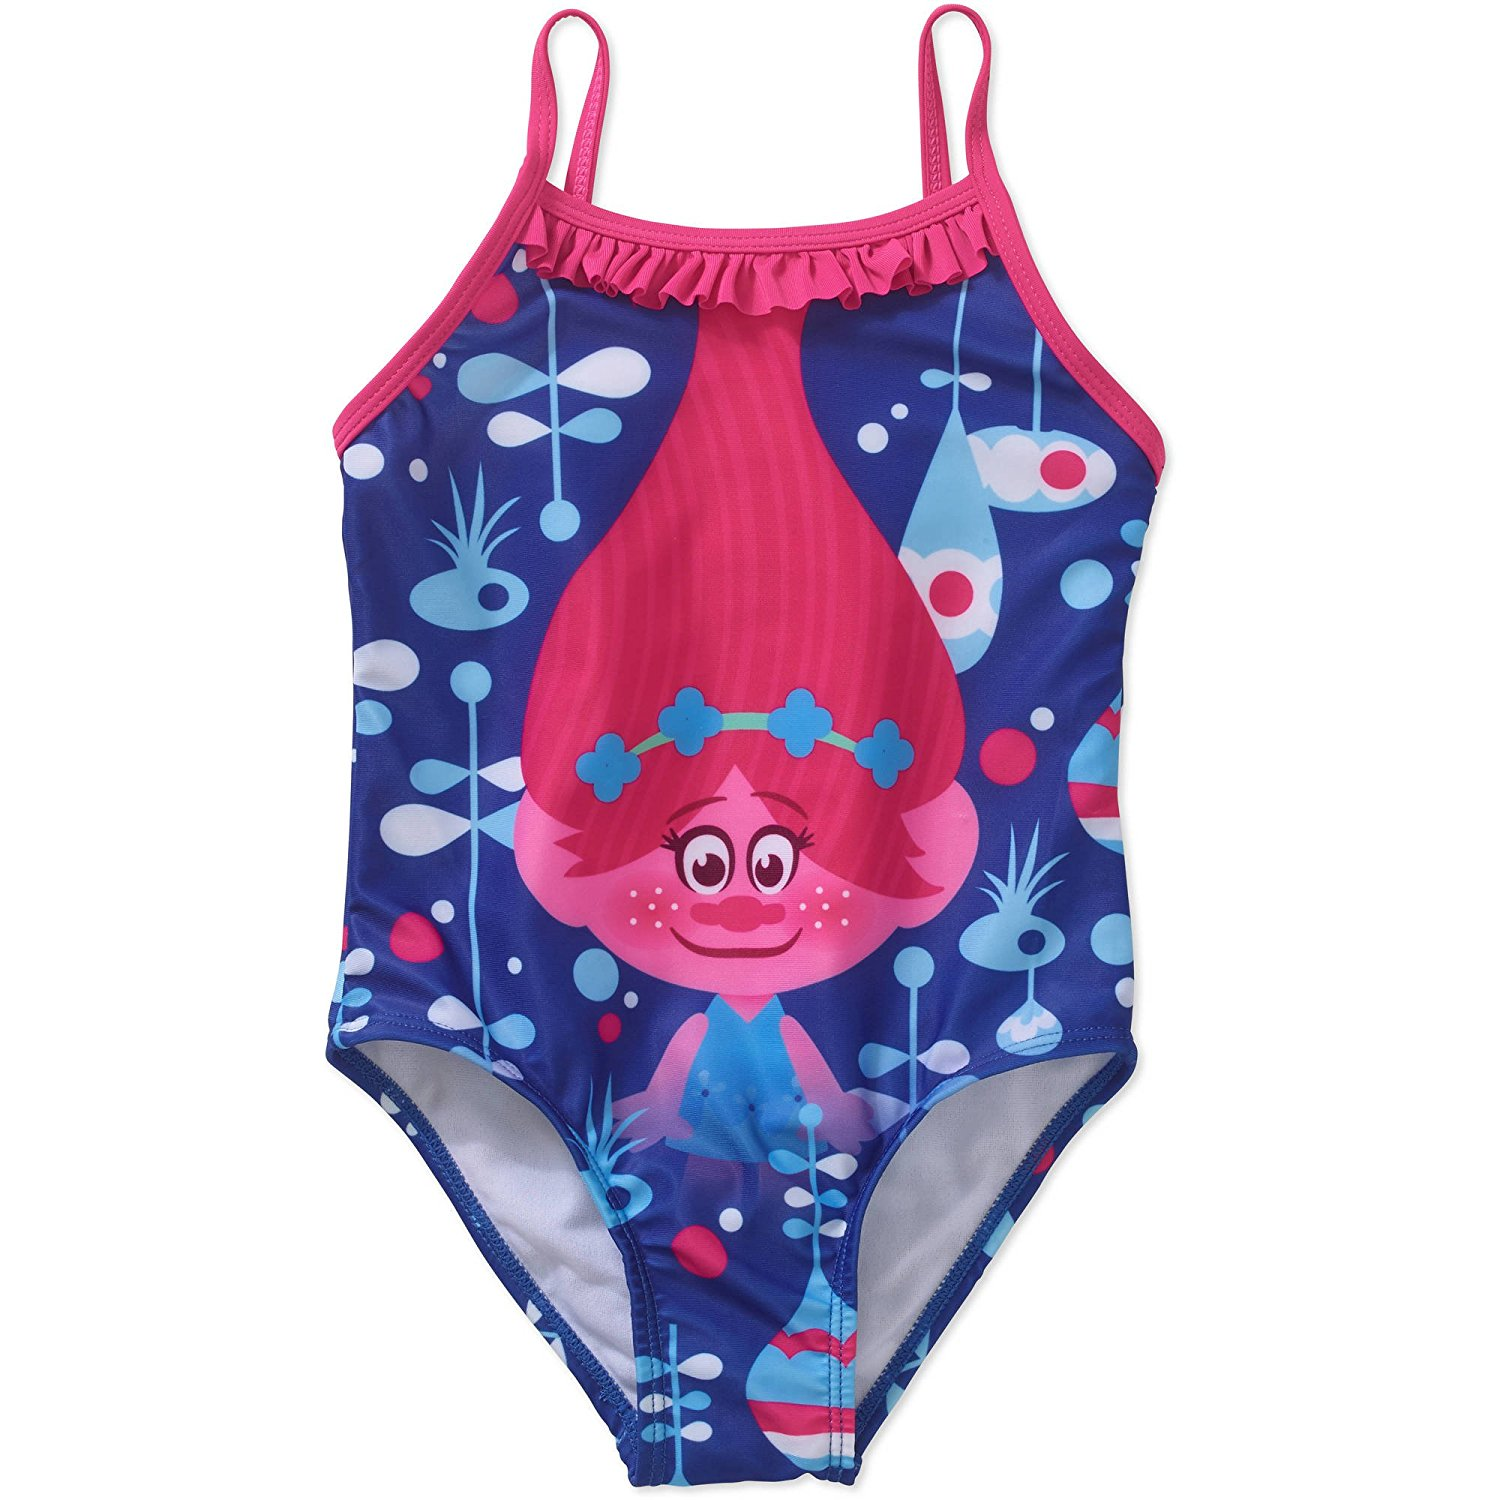 4e57ad6dd9 Cheap Toddler Girls Swim Suit, find Toddler Girls Swim Suit deals on ...